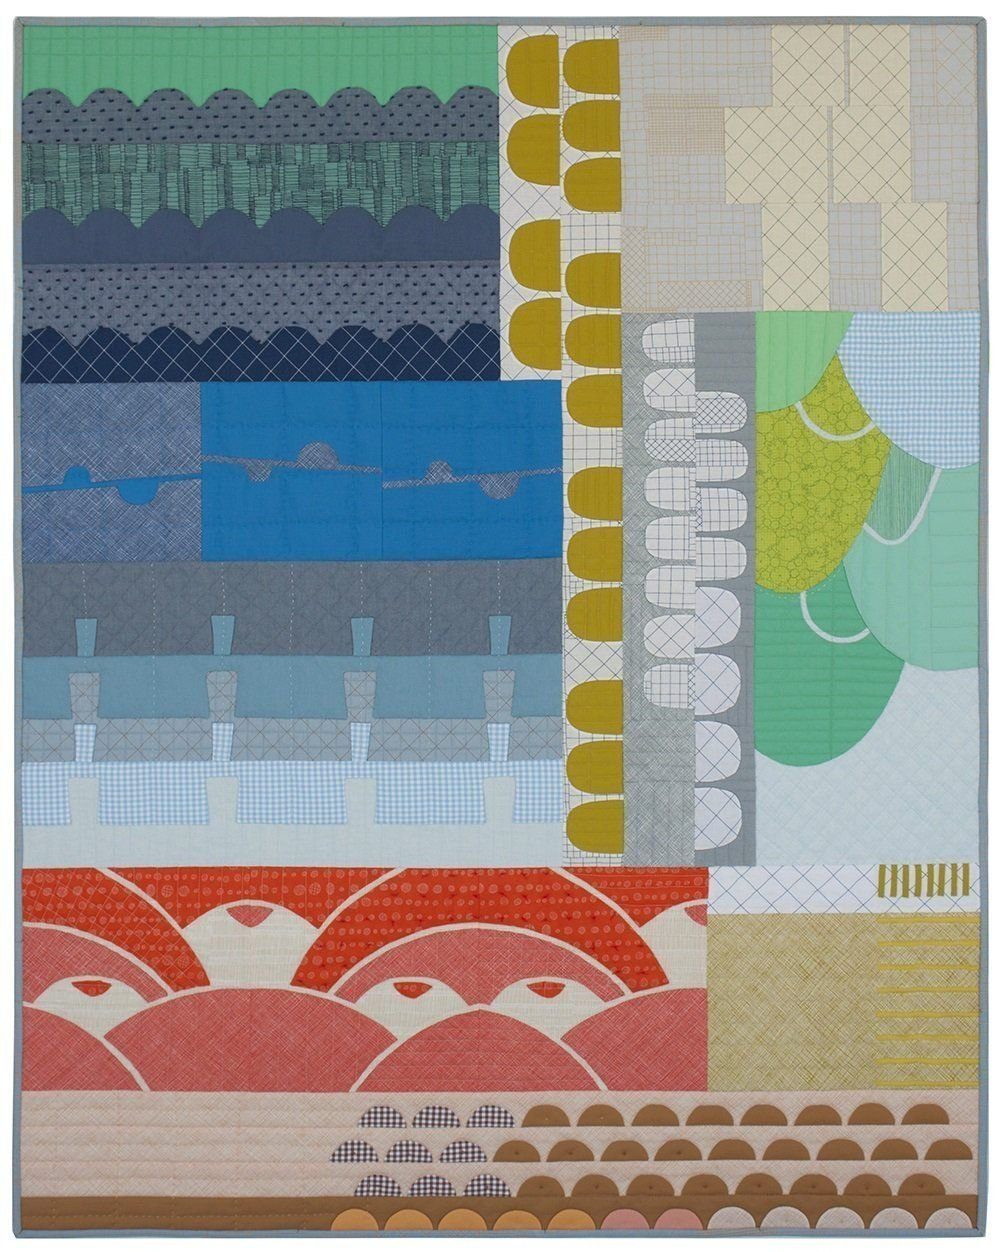 Quilt Kit - The Collection Quilt BOM